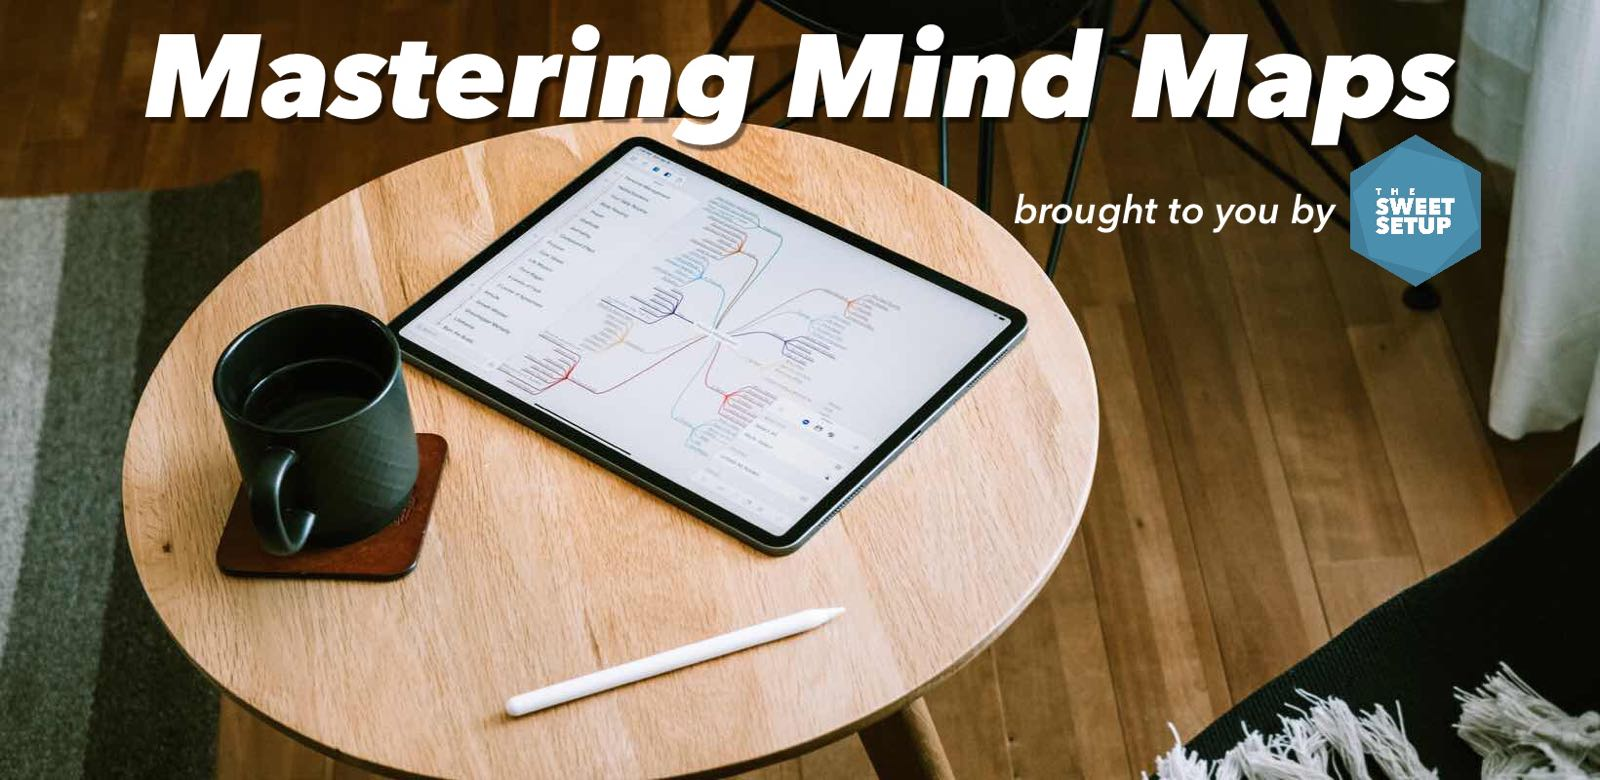 mastering-mind-maps-a-course-by-the-sweet-setup